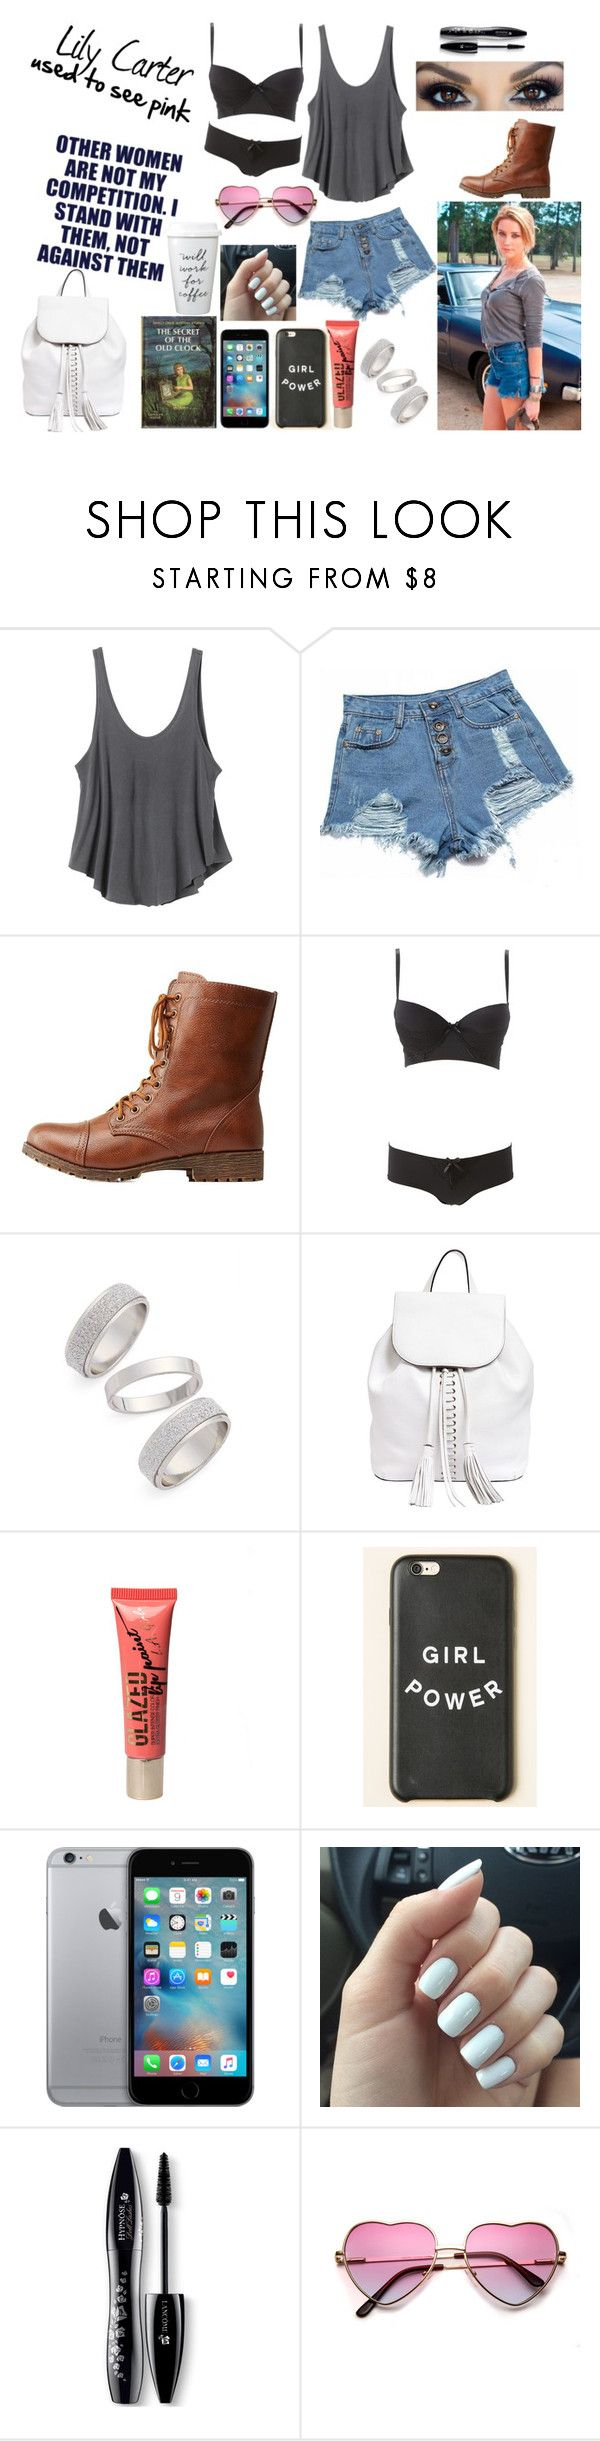 """Scarred Meant Colored [Lily Carter]"" by bentleyswag ❤ liked on Polyvore featuring RVCA, M.S.P., Bamboo, Charlotte Russe, Topshop, Rebecca Minkoff, Lancôme, OC, amberheard and originalcharacter"